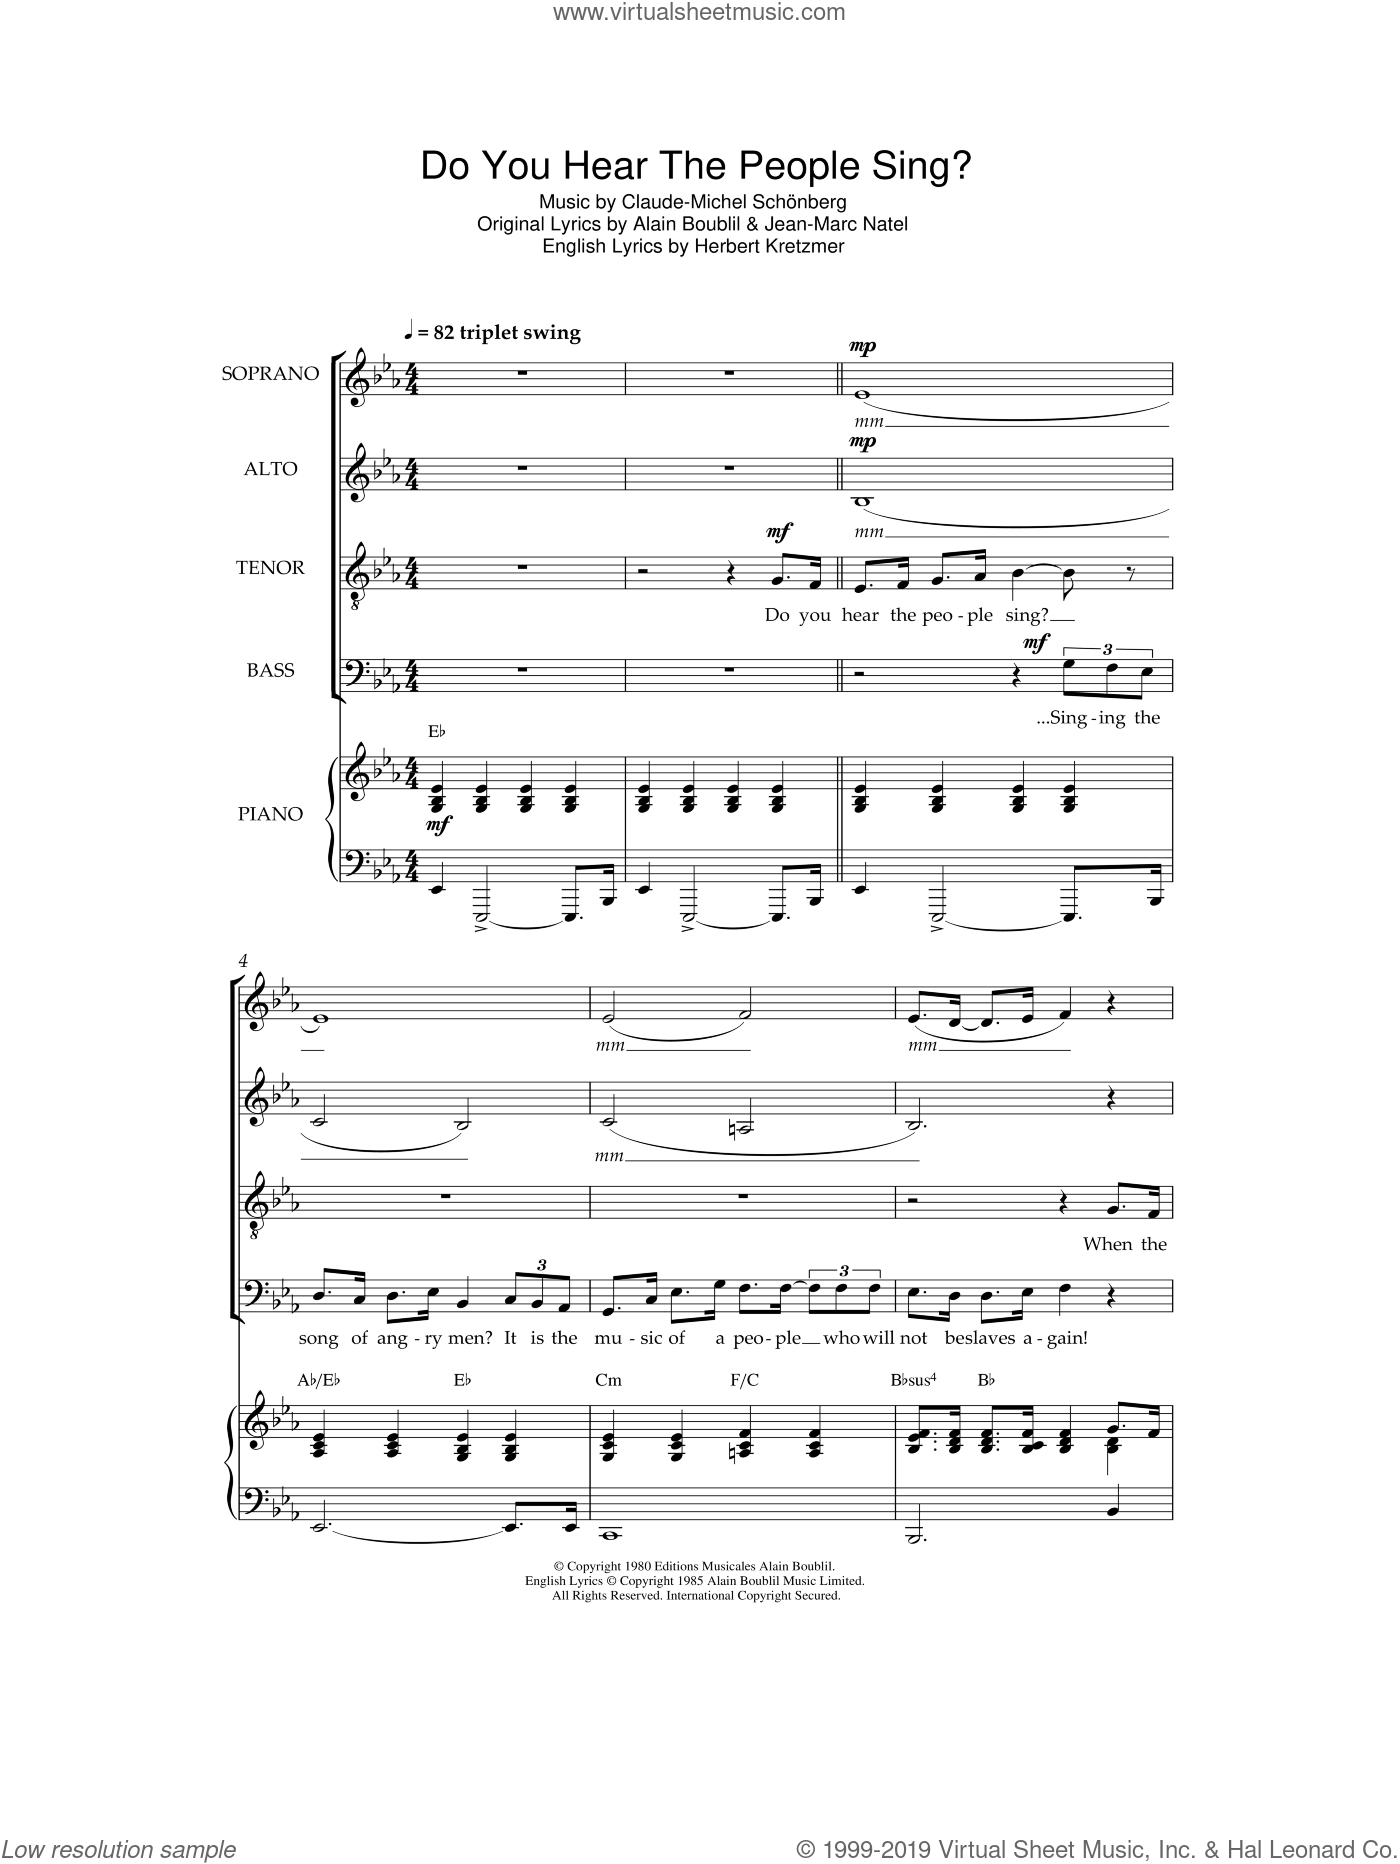 Do You Hear The People Sing? (from Les Miserables) sheet music for choir by Original Cast Recording, Alain Boublil, Claude-Michel Schonberg, Herbert Kretzmer and Jean-Marc Natel, intermediate